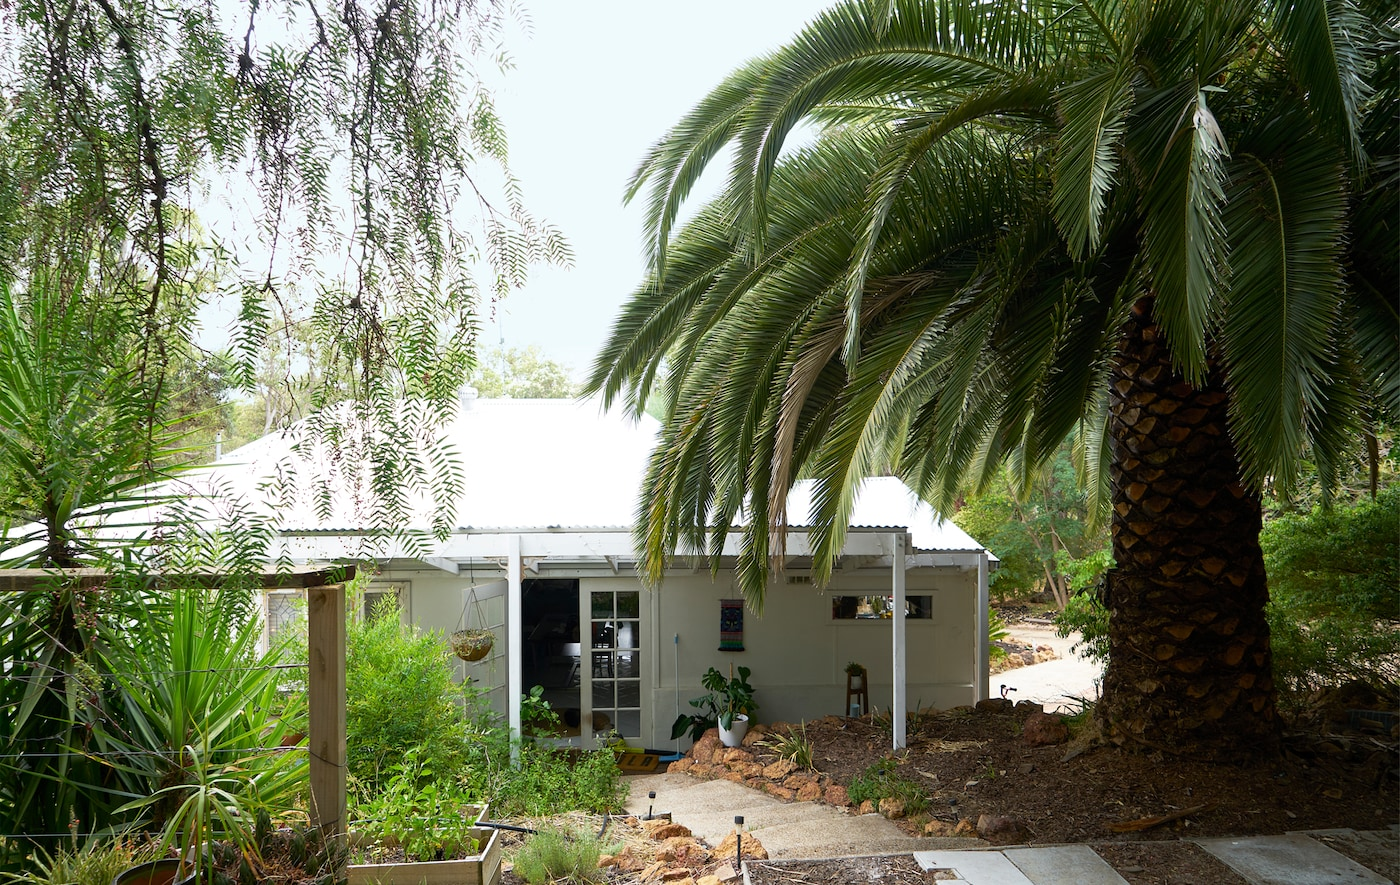 A one-storey white house among woodland, with a giant palm tree.